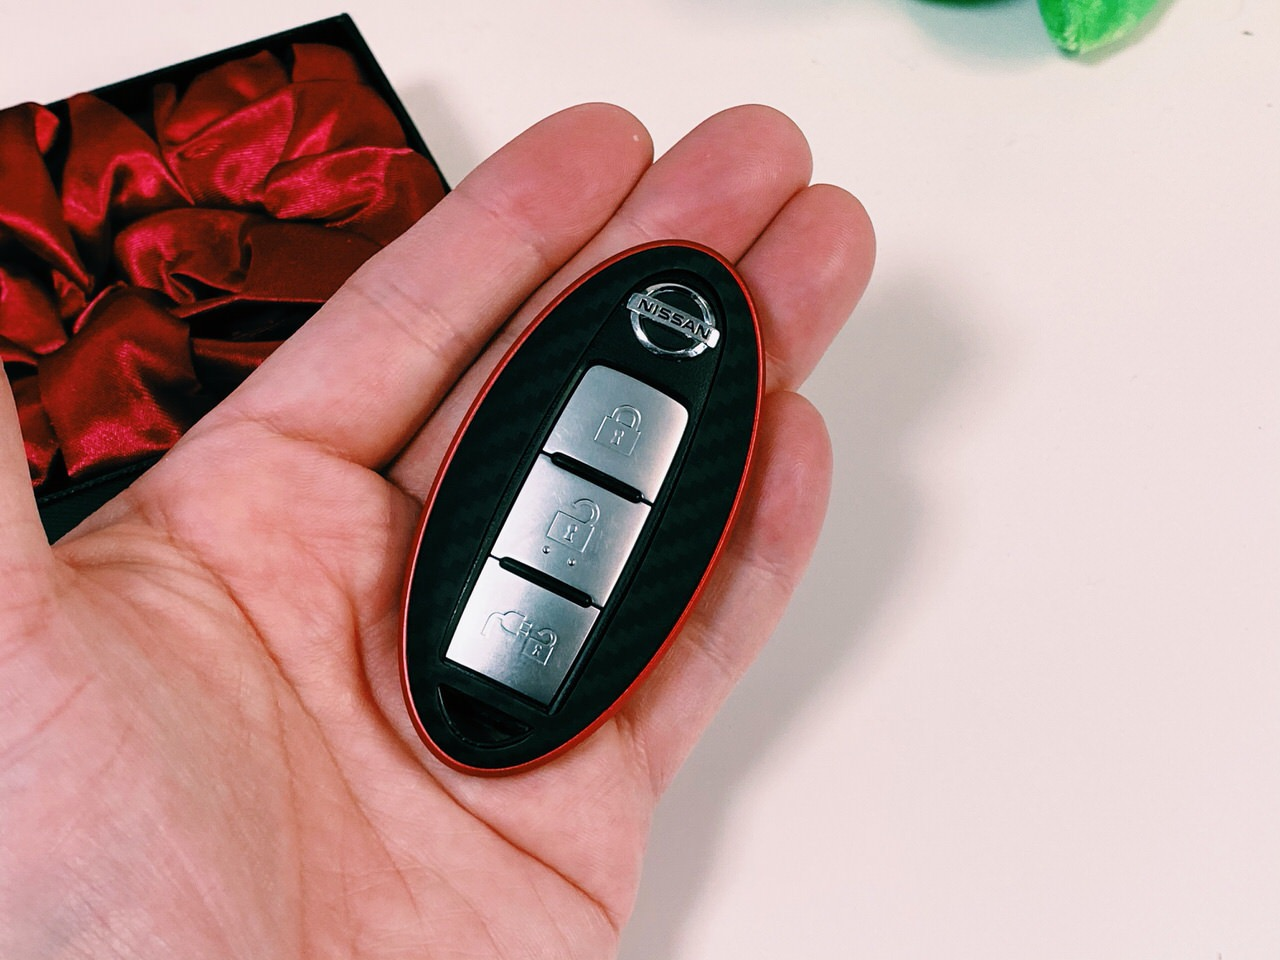 【Deff】日産車用スマートキーケース「WIZ JACKET for SMART KEY」11